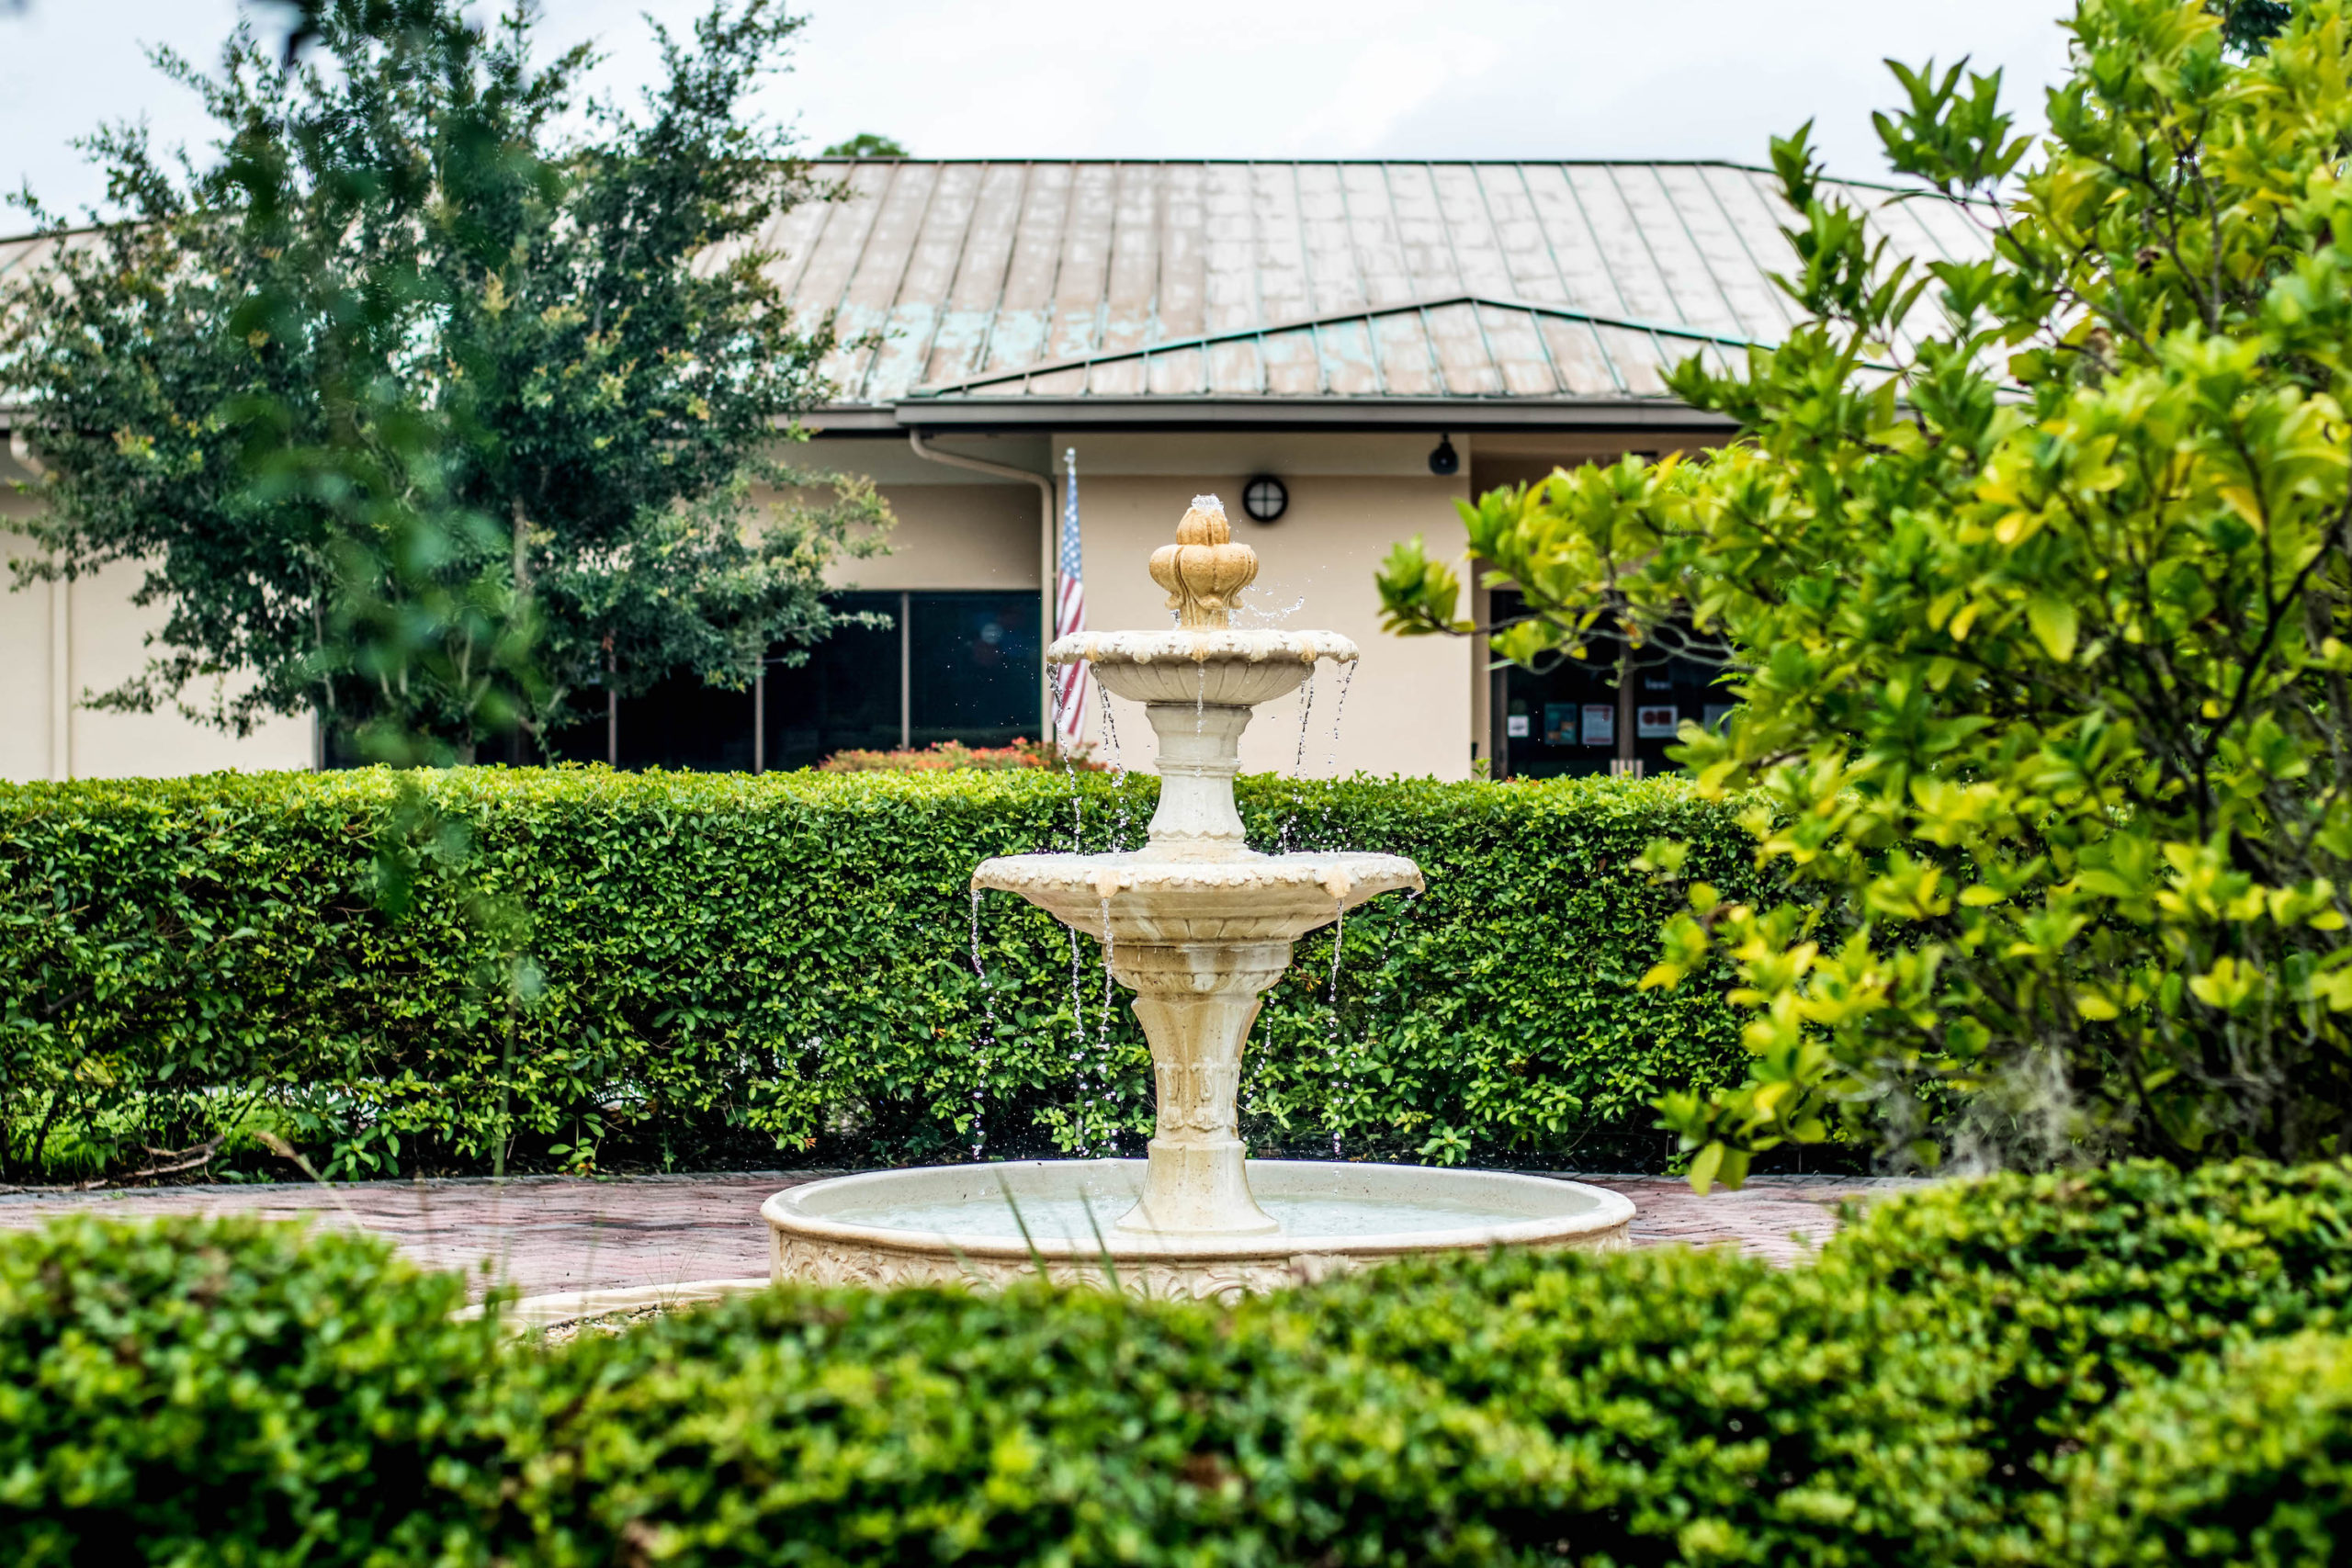 Fountain in the garden of The Gardens at DePugh Nursing Center